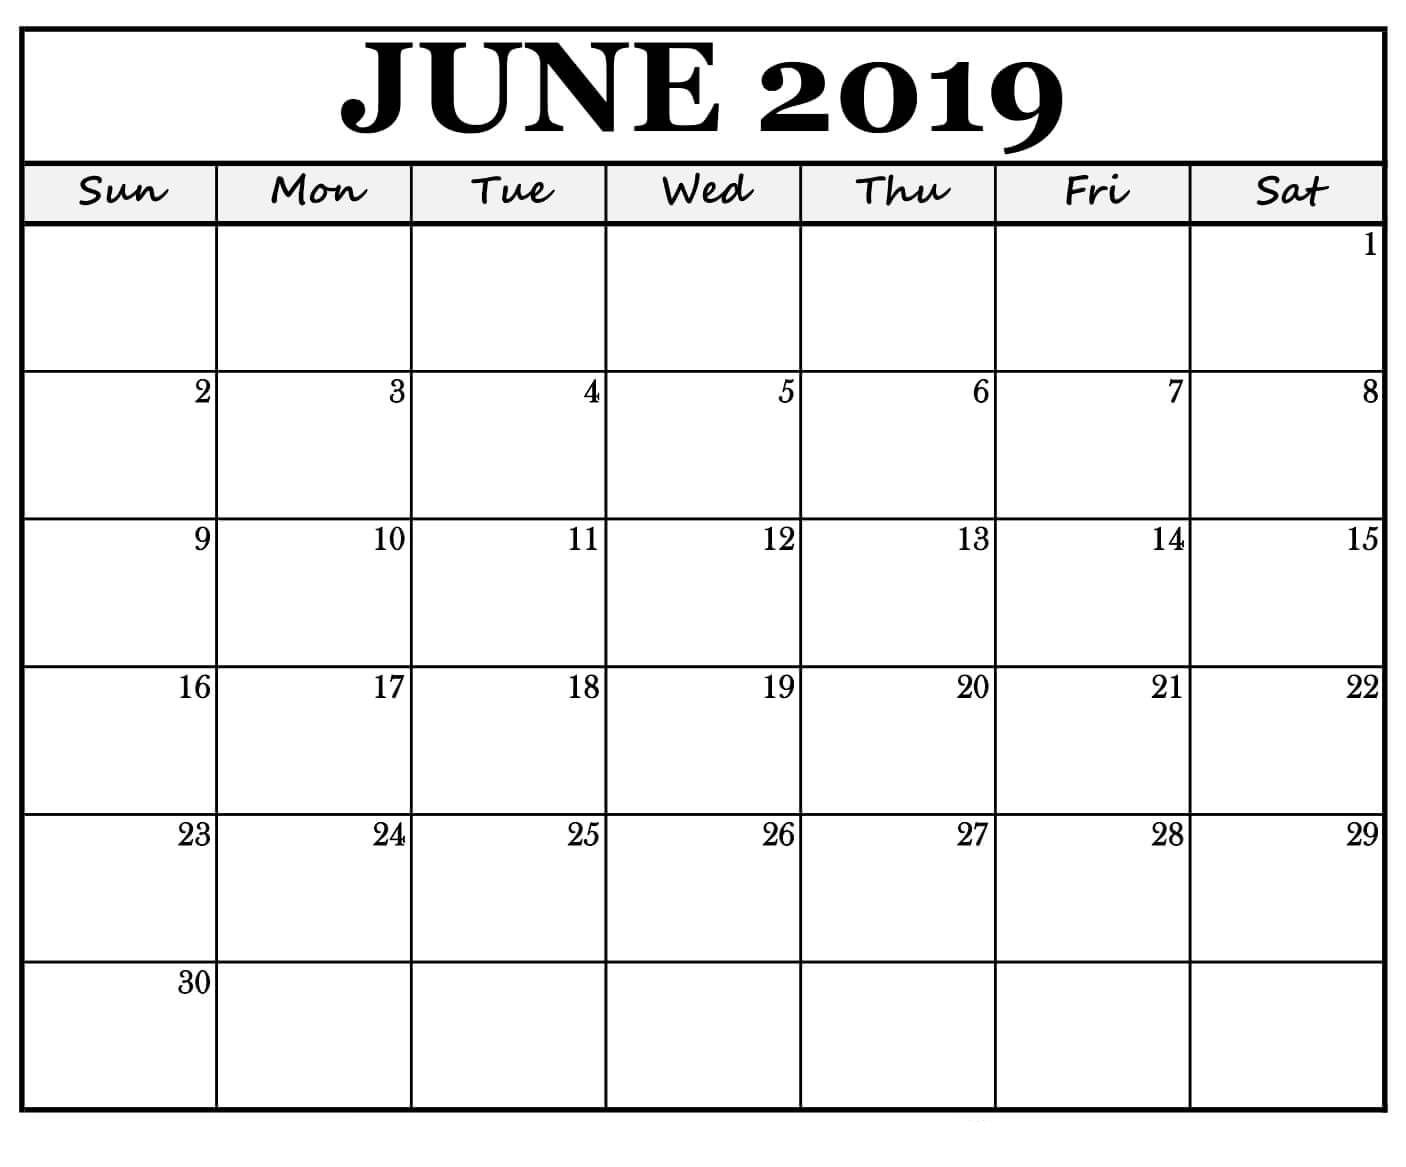 Waterproof June 2020 Calendar Wallpaper For Desktop Iphone in Free Printable Calendar 2020 Waterproof